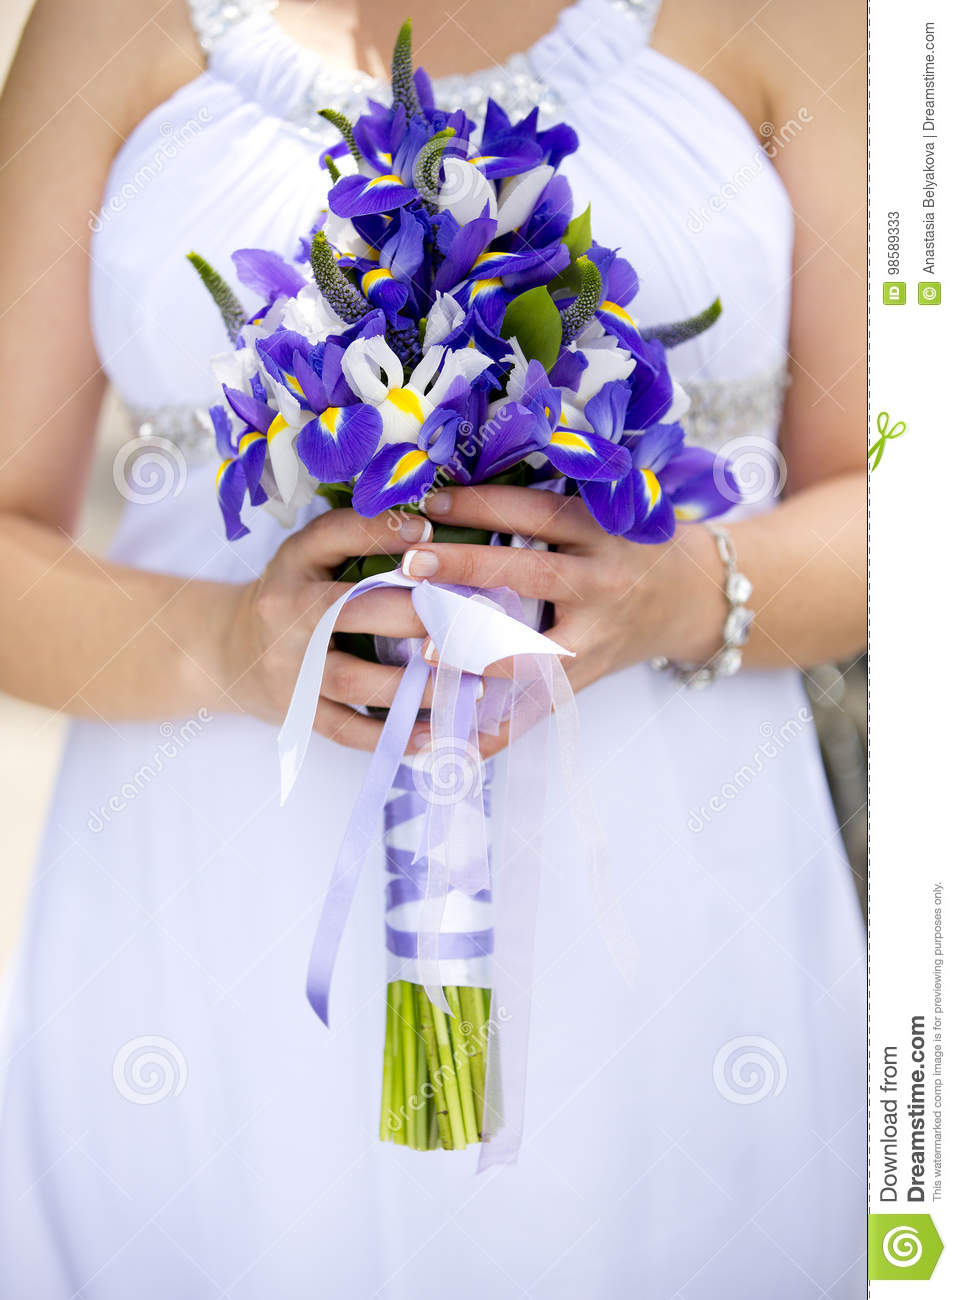 Hands Of Bride Holding Wedding Bouquet Of Violet And White Flowers